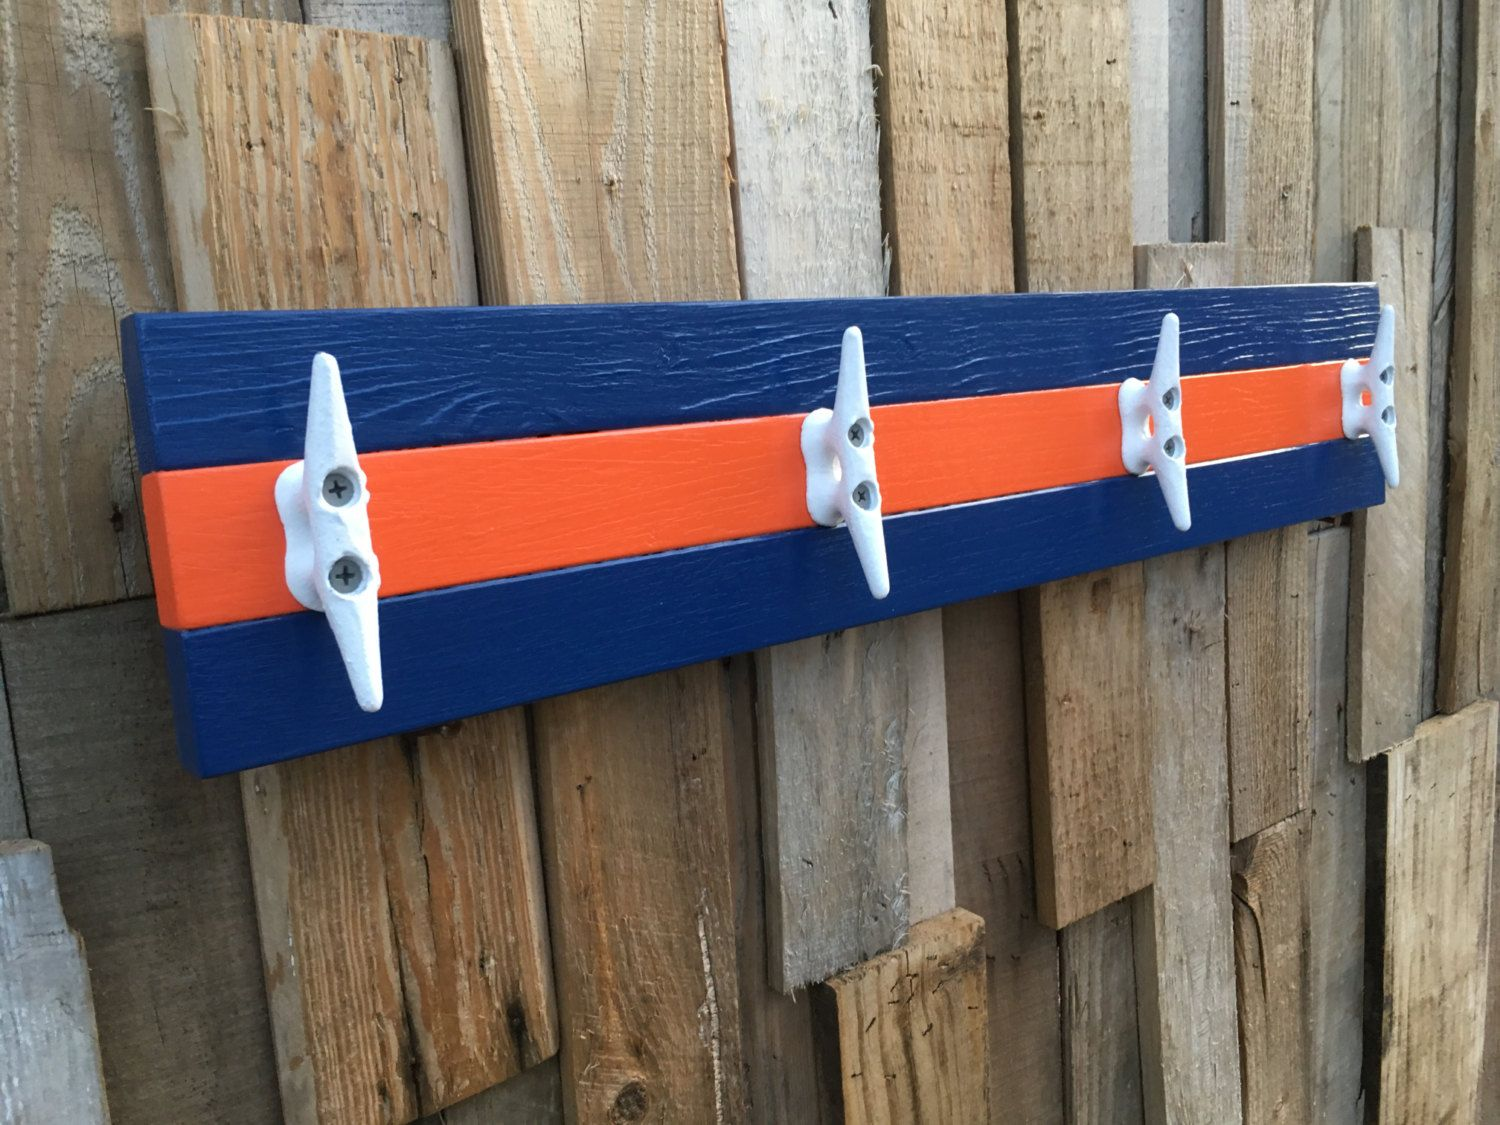 Nautical Boat Cleat Dock Cleat Coat Rack Or Towel Rack Florida Gators Blue And Orange By Williswooddesigns On Ets Boat Cleats Dock Cleat Boat Cleat Towel Rack